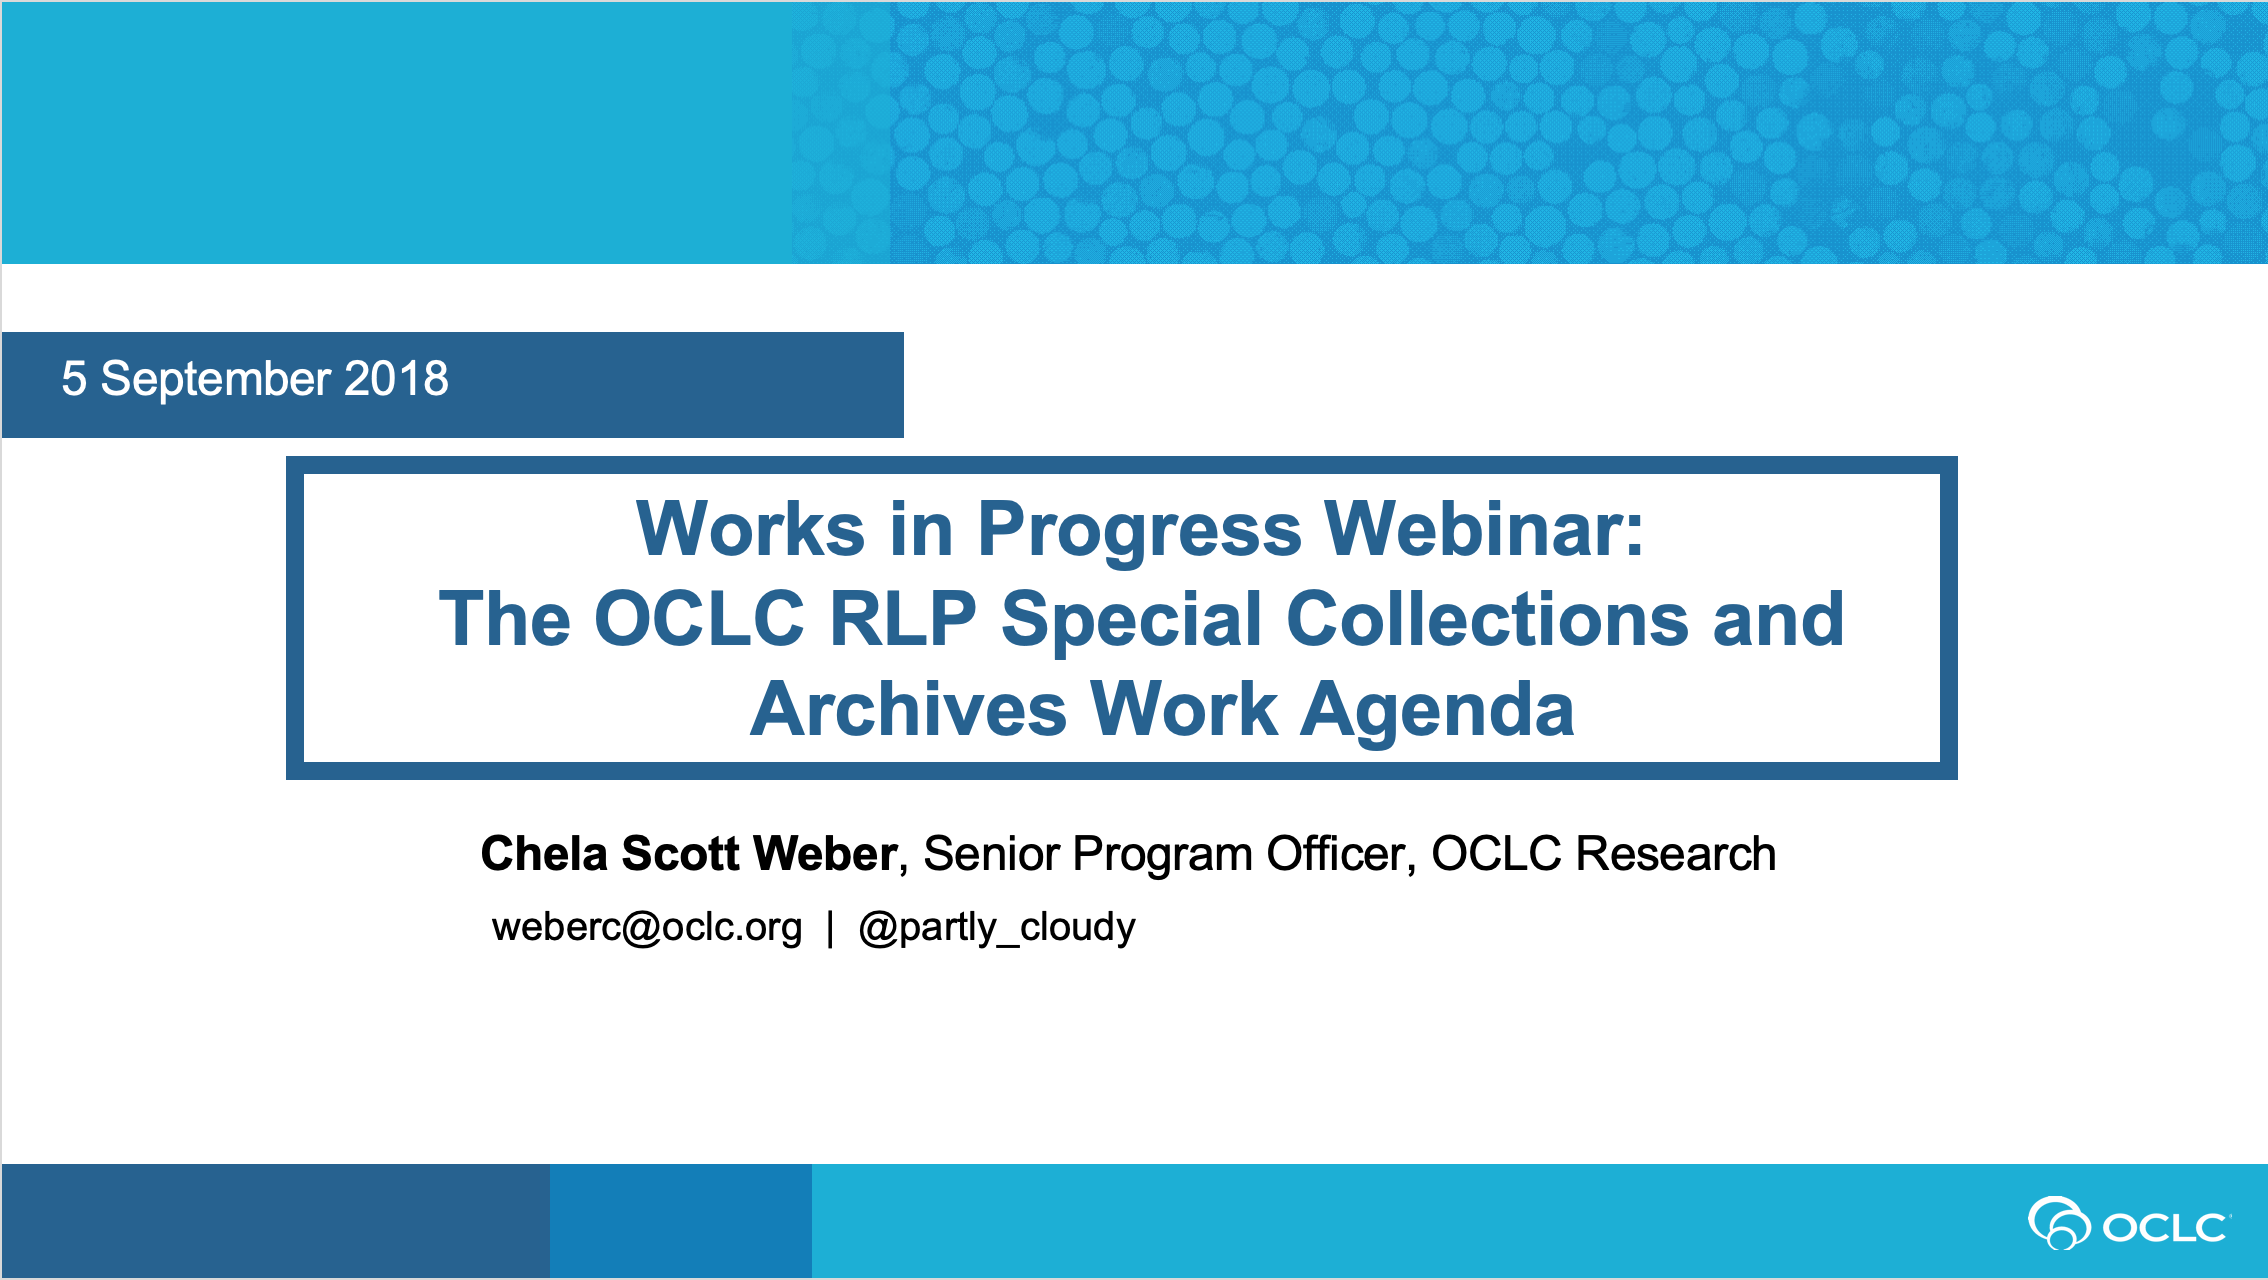 The OCLC RLP Special Collections and Archives Work Agenda (video)